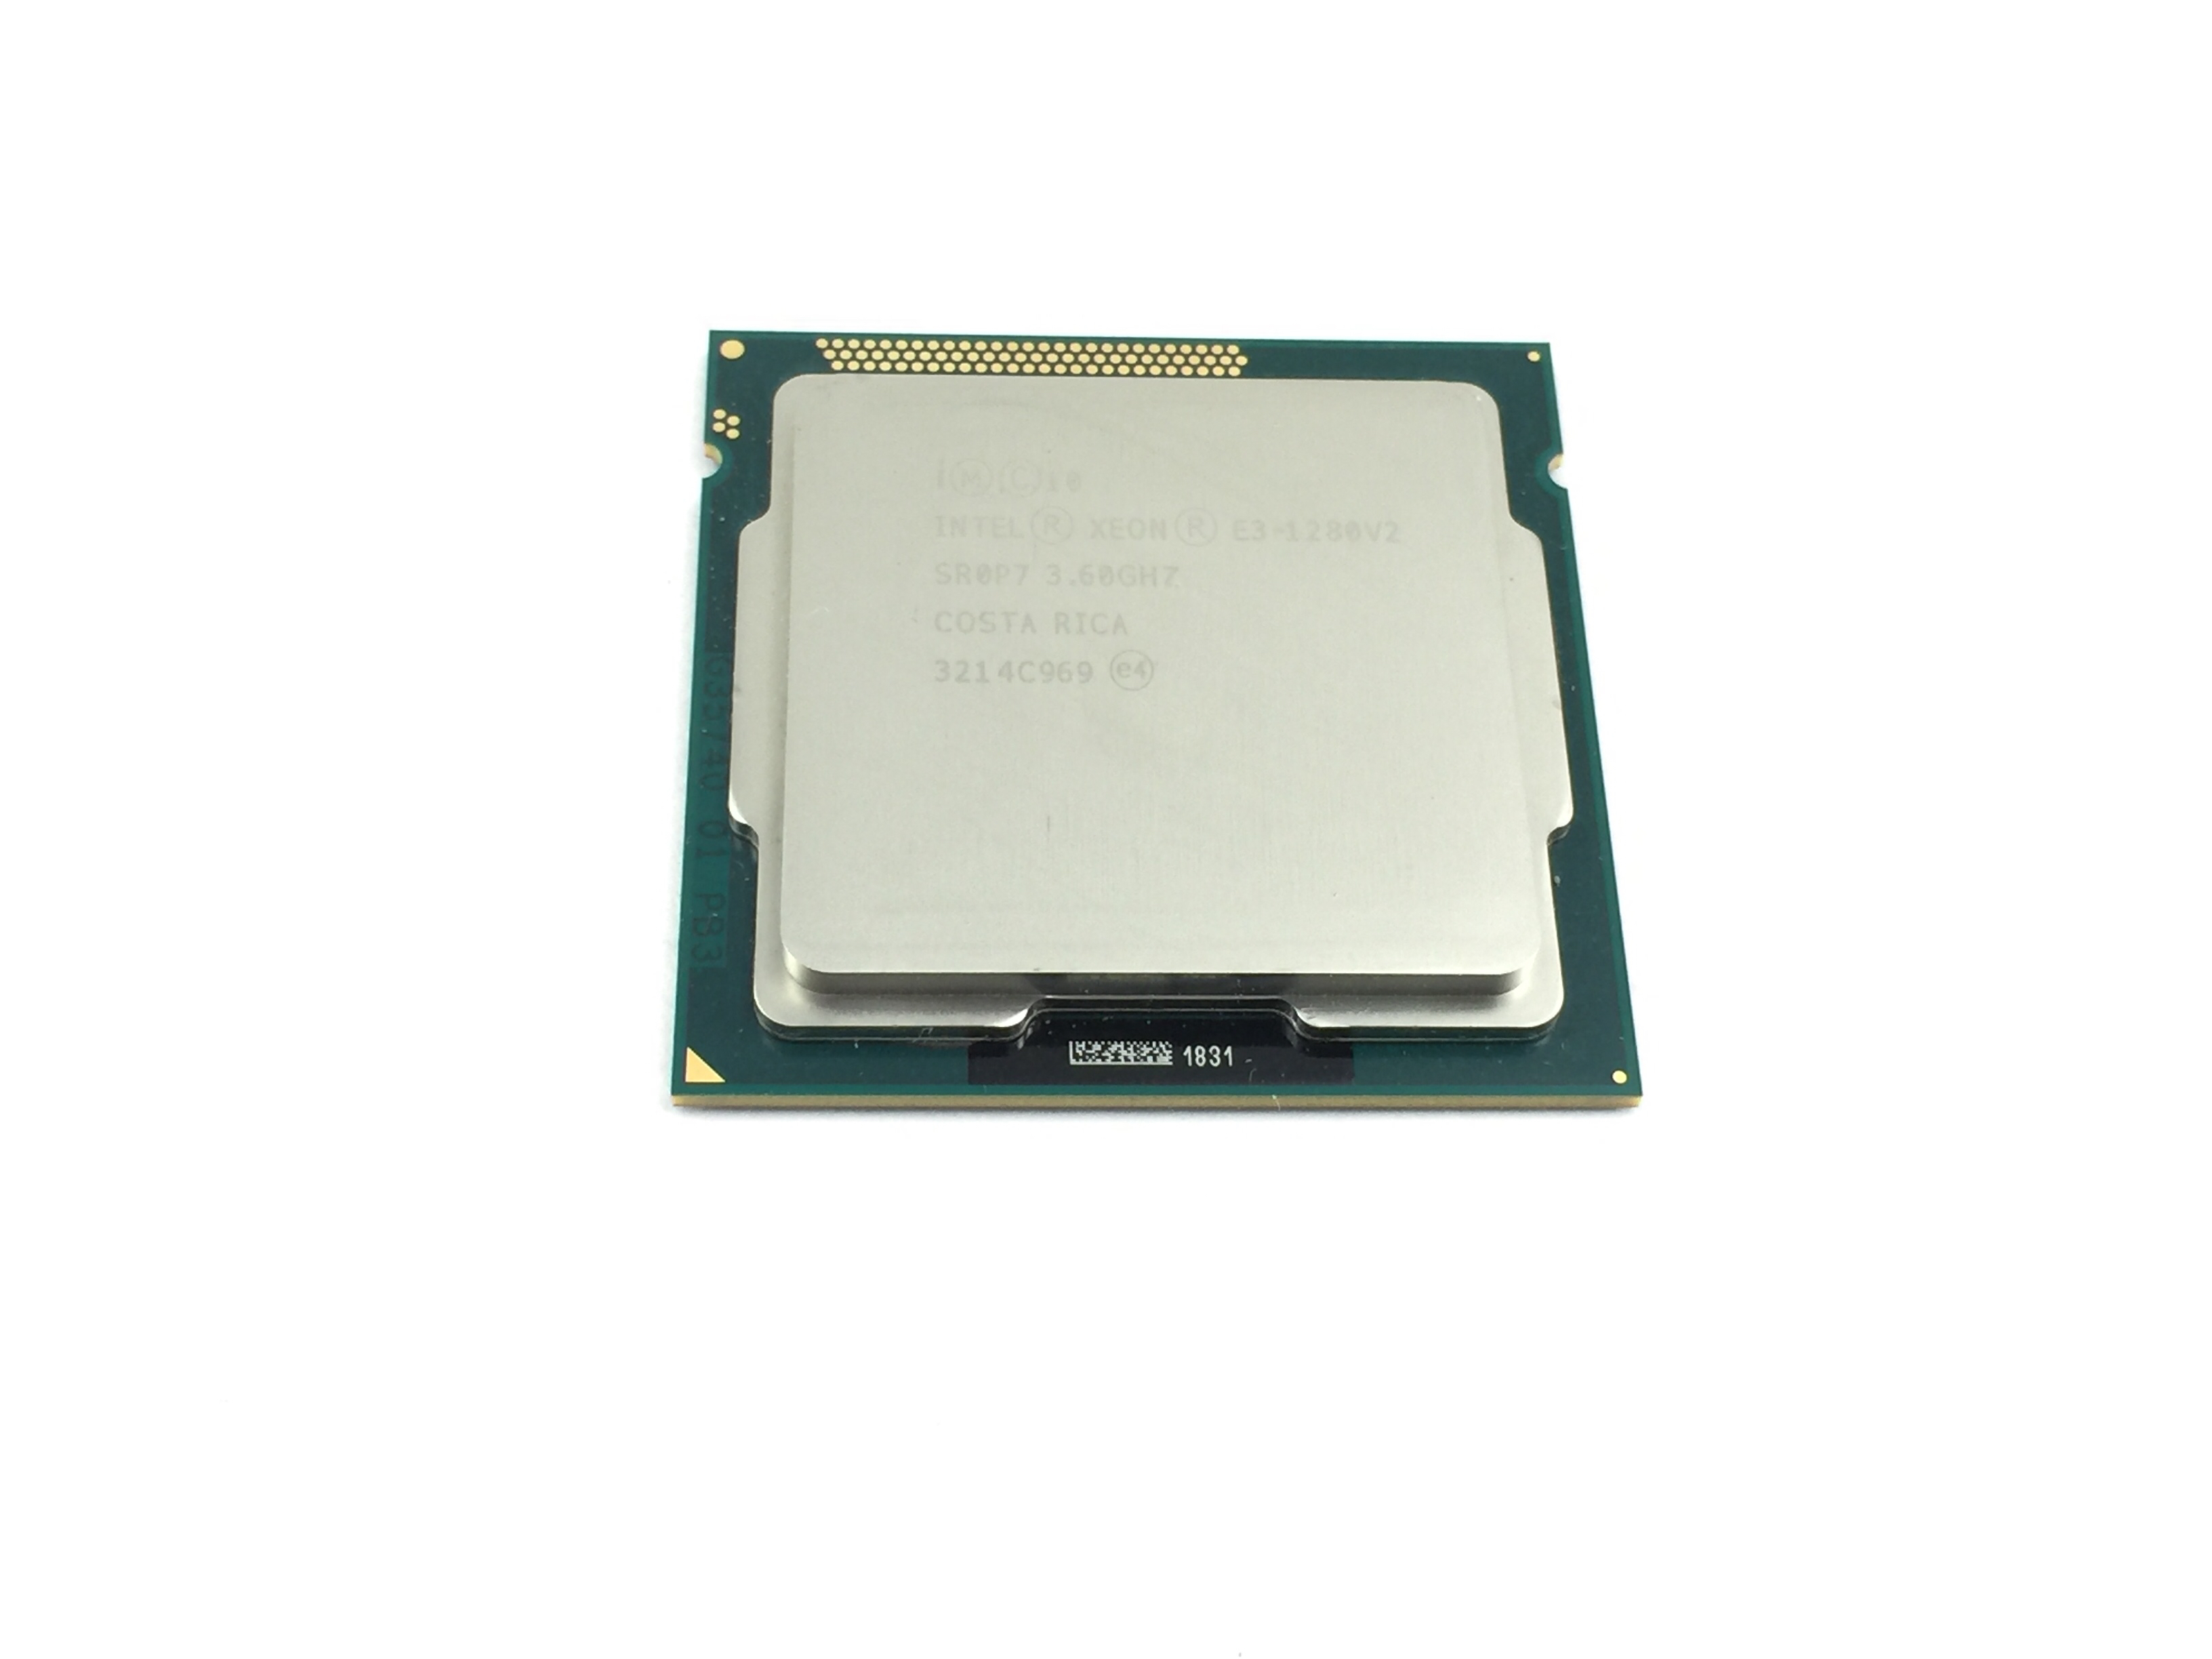 INTEL XEON E3-1280V2 3.6GHZ QUAD CORE 8MB CACHE LGA1155 PROCESSOR (SR0P7)